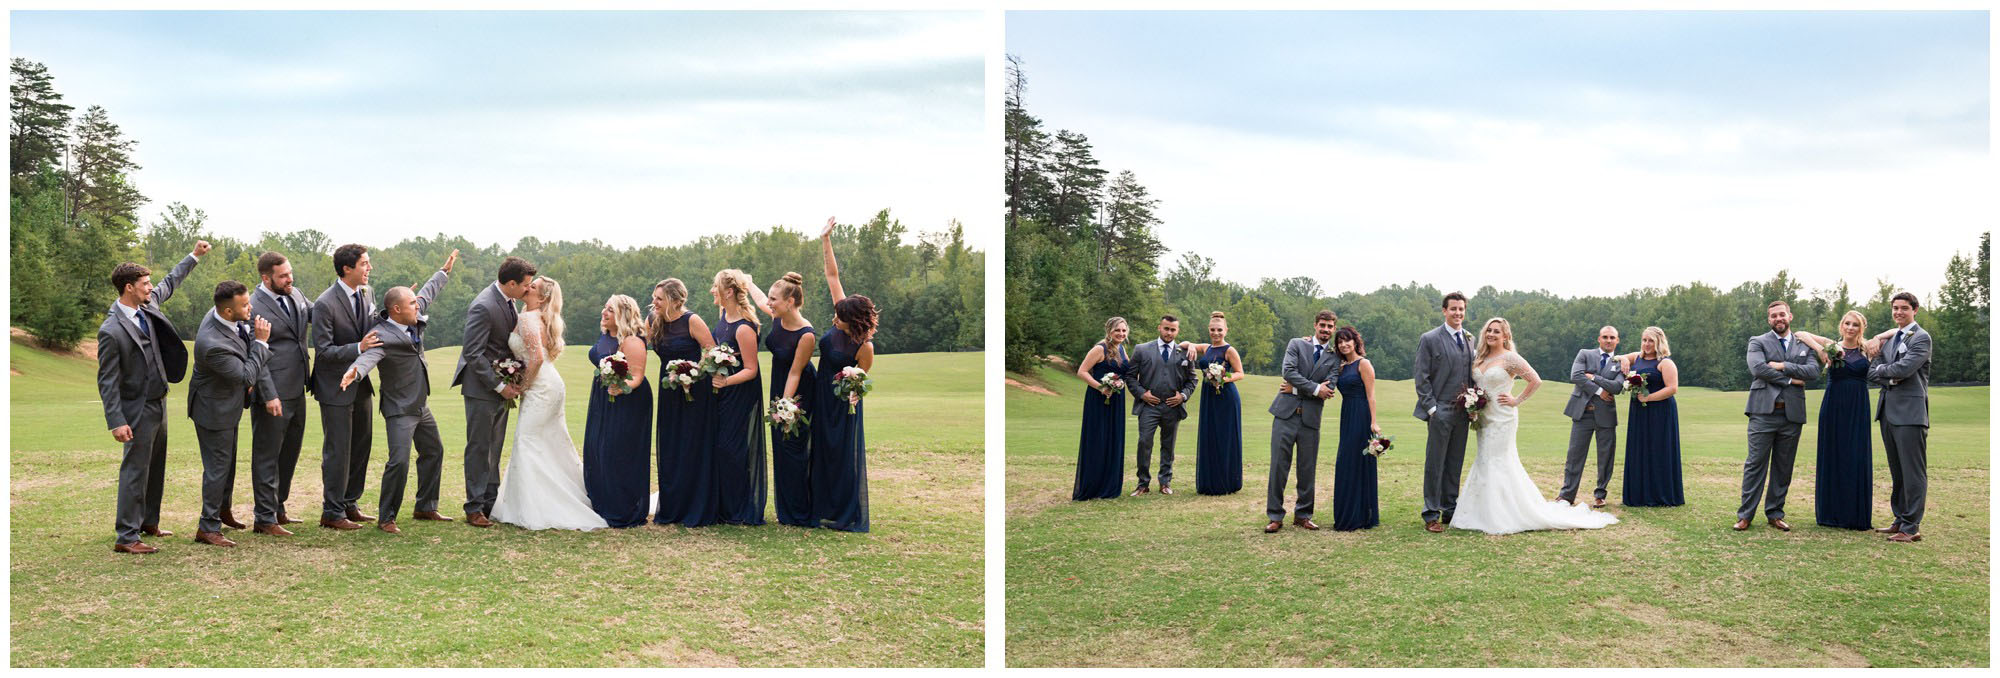 bridal party at golf course wedding